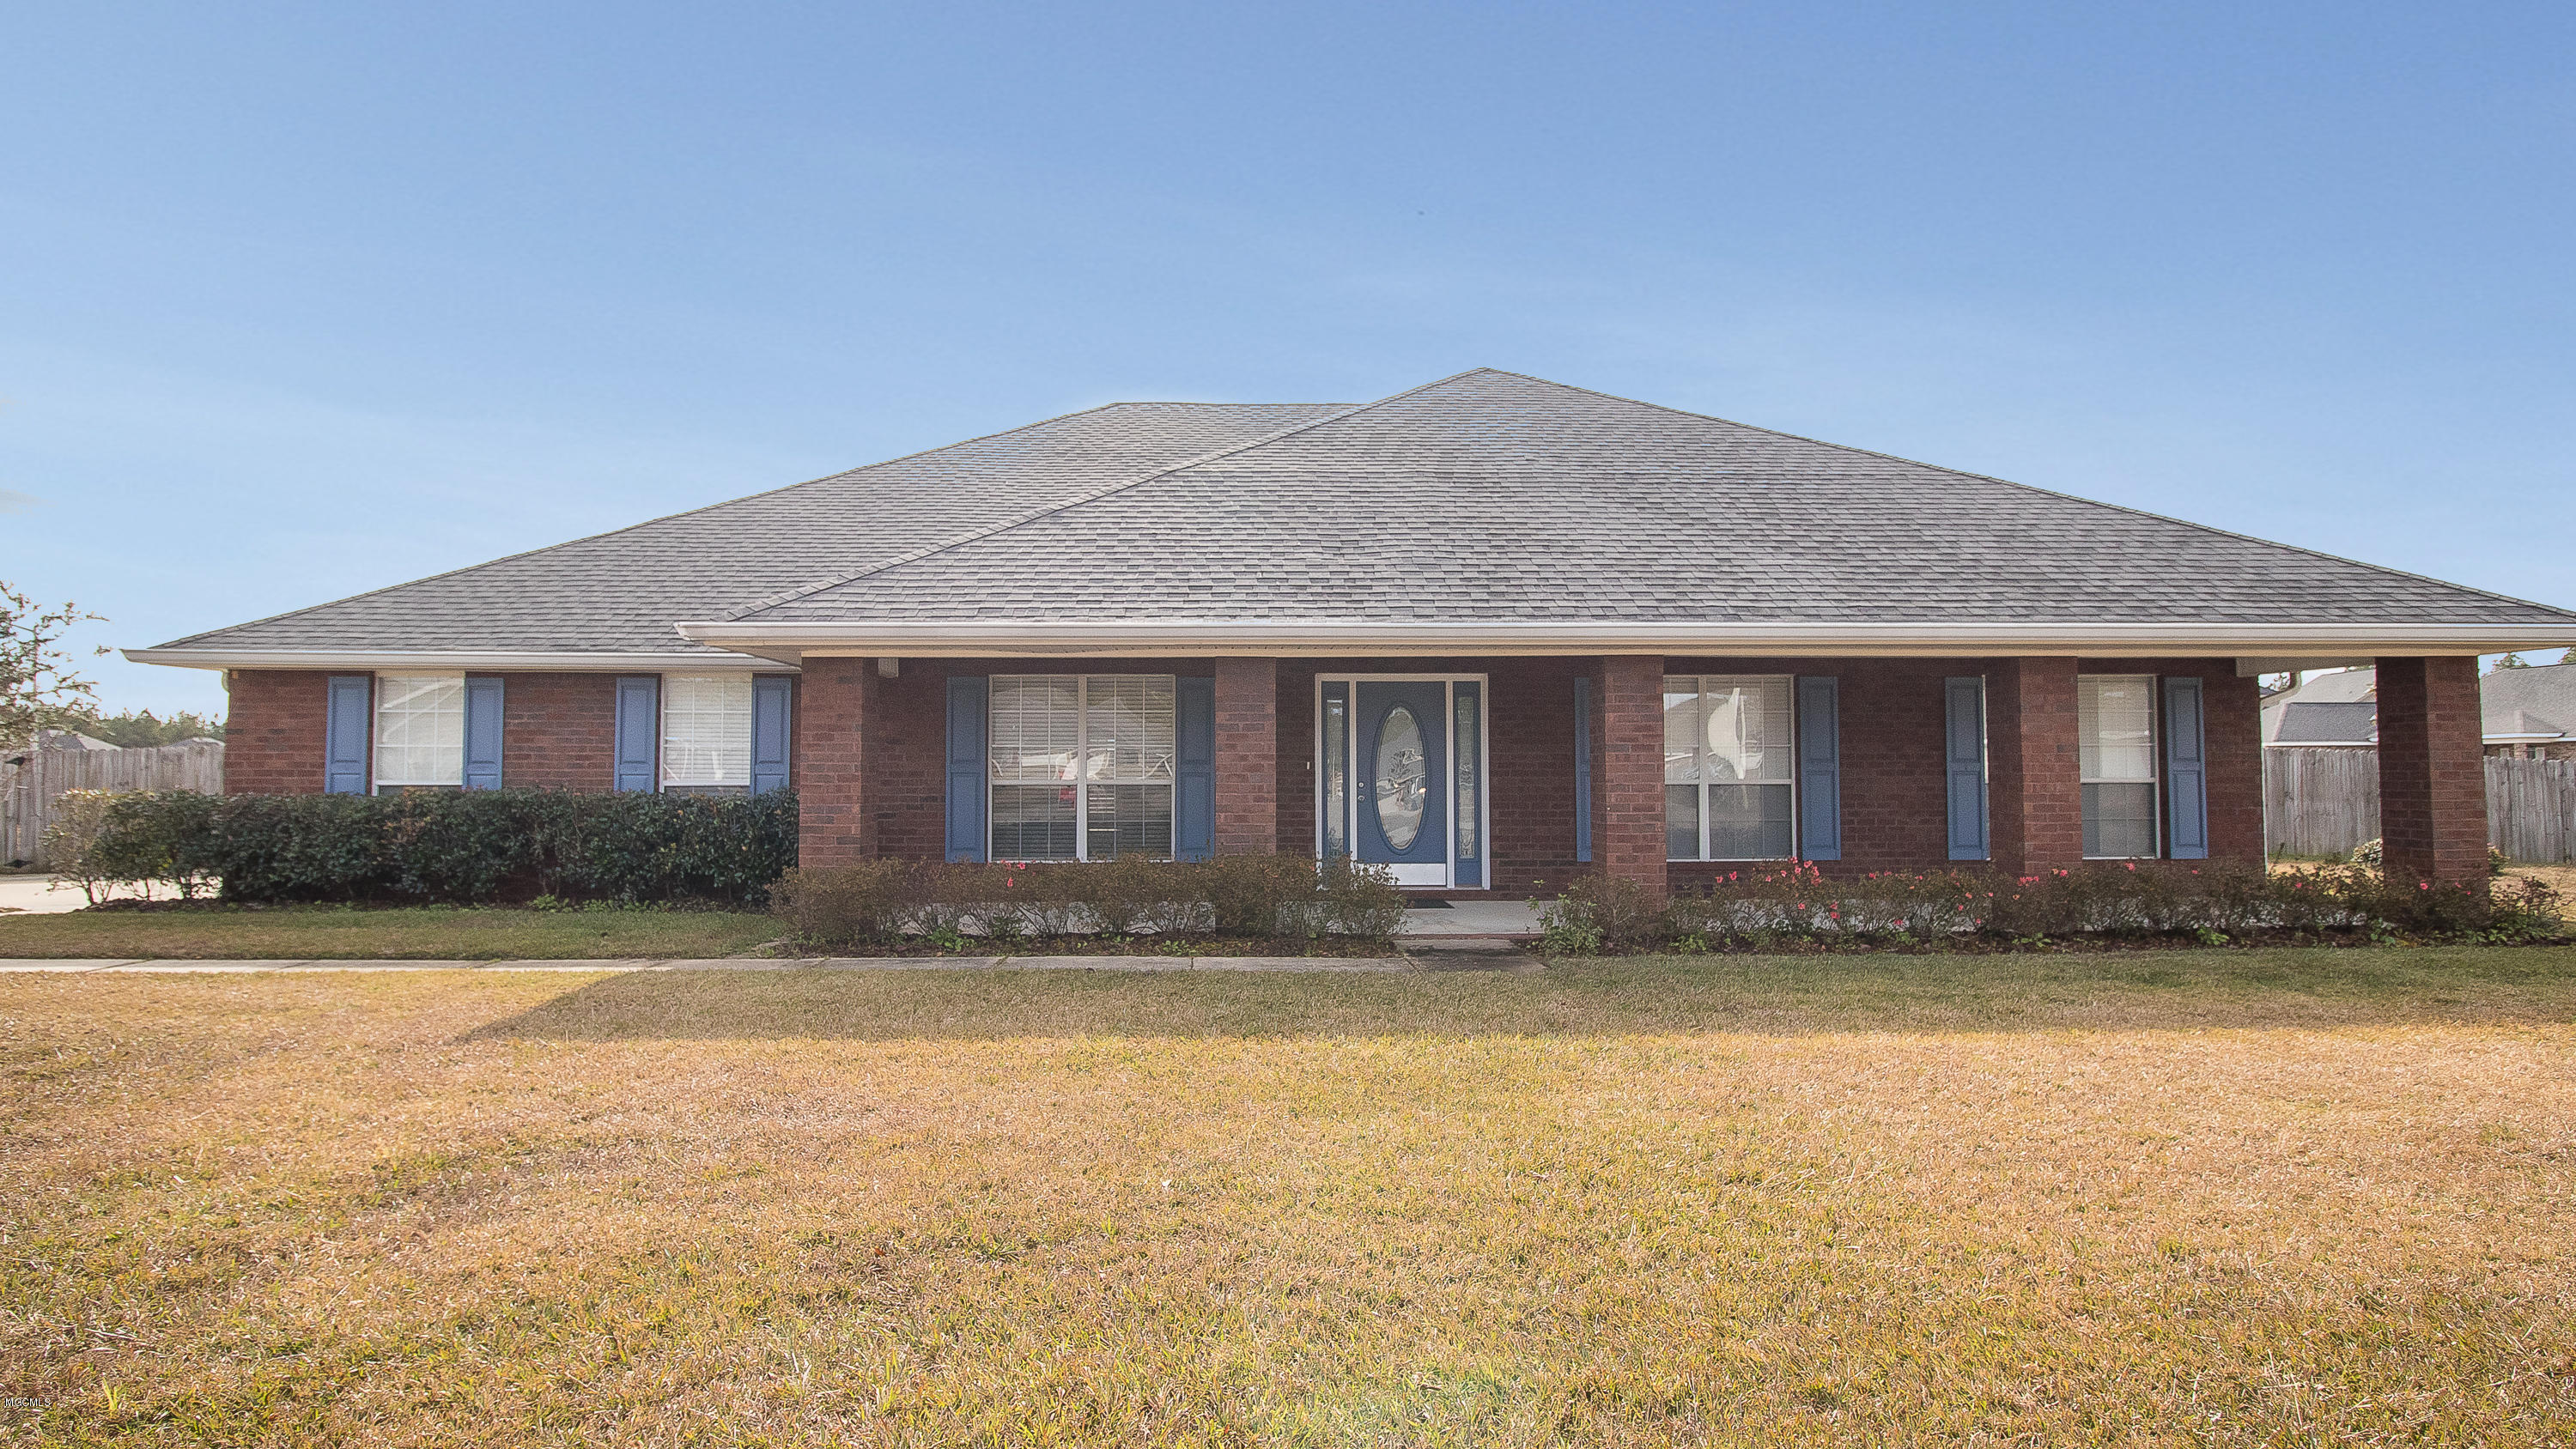 15357 Camelot Dr, D'Iberville, Mississippi 39540, 4 Bedrooms Bedrooms, ,3 BathroomsBathrooms,Single-family,For Sale,Camelot,342001